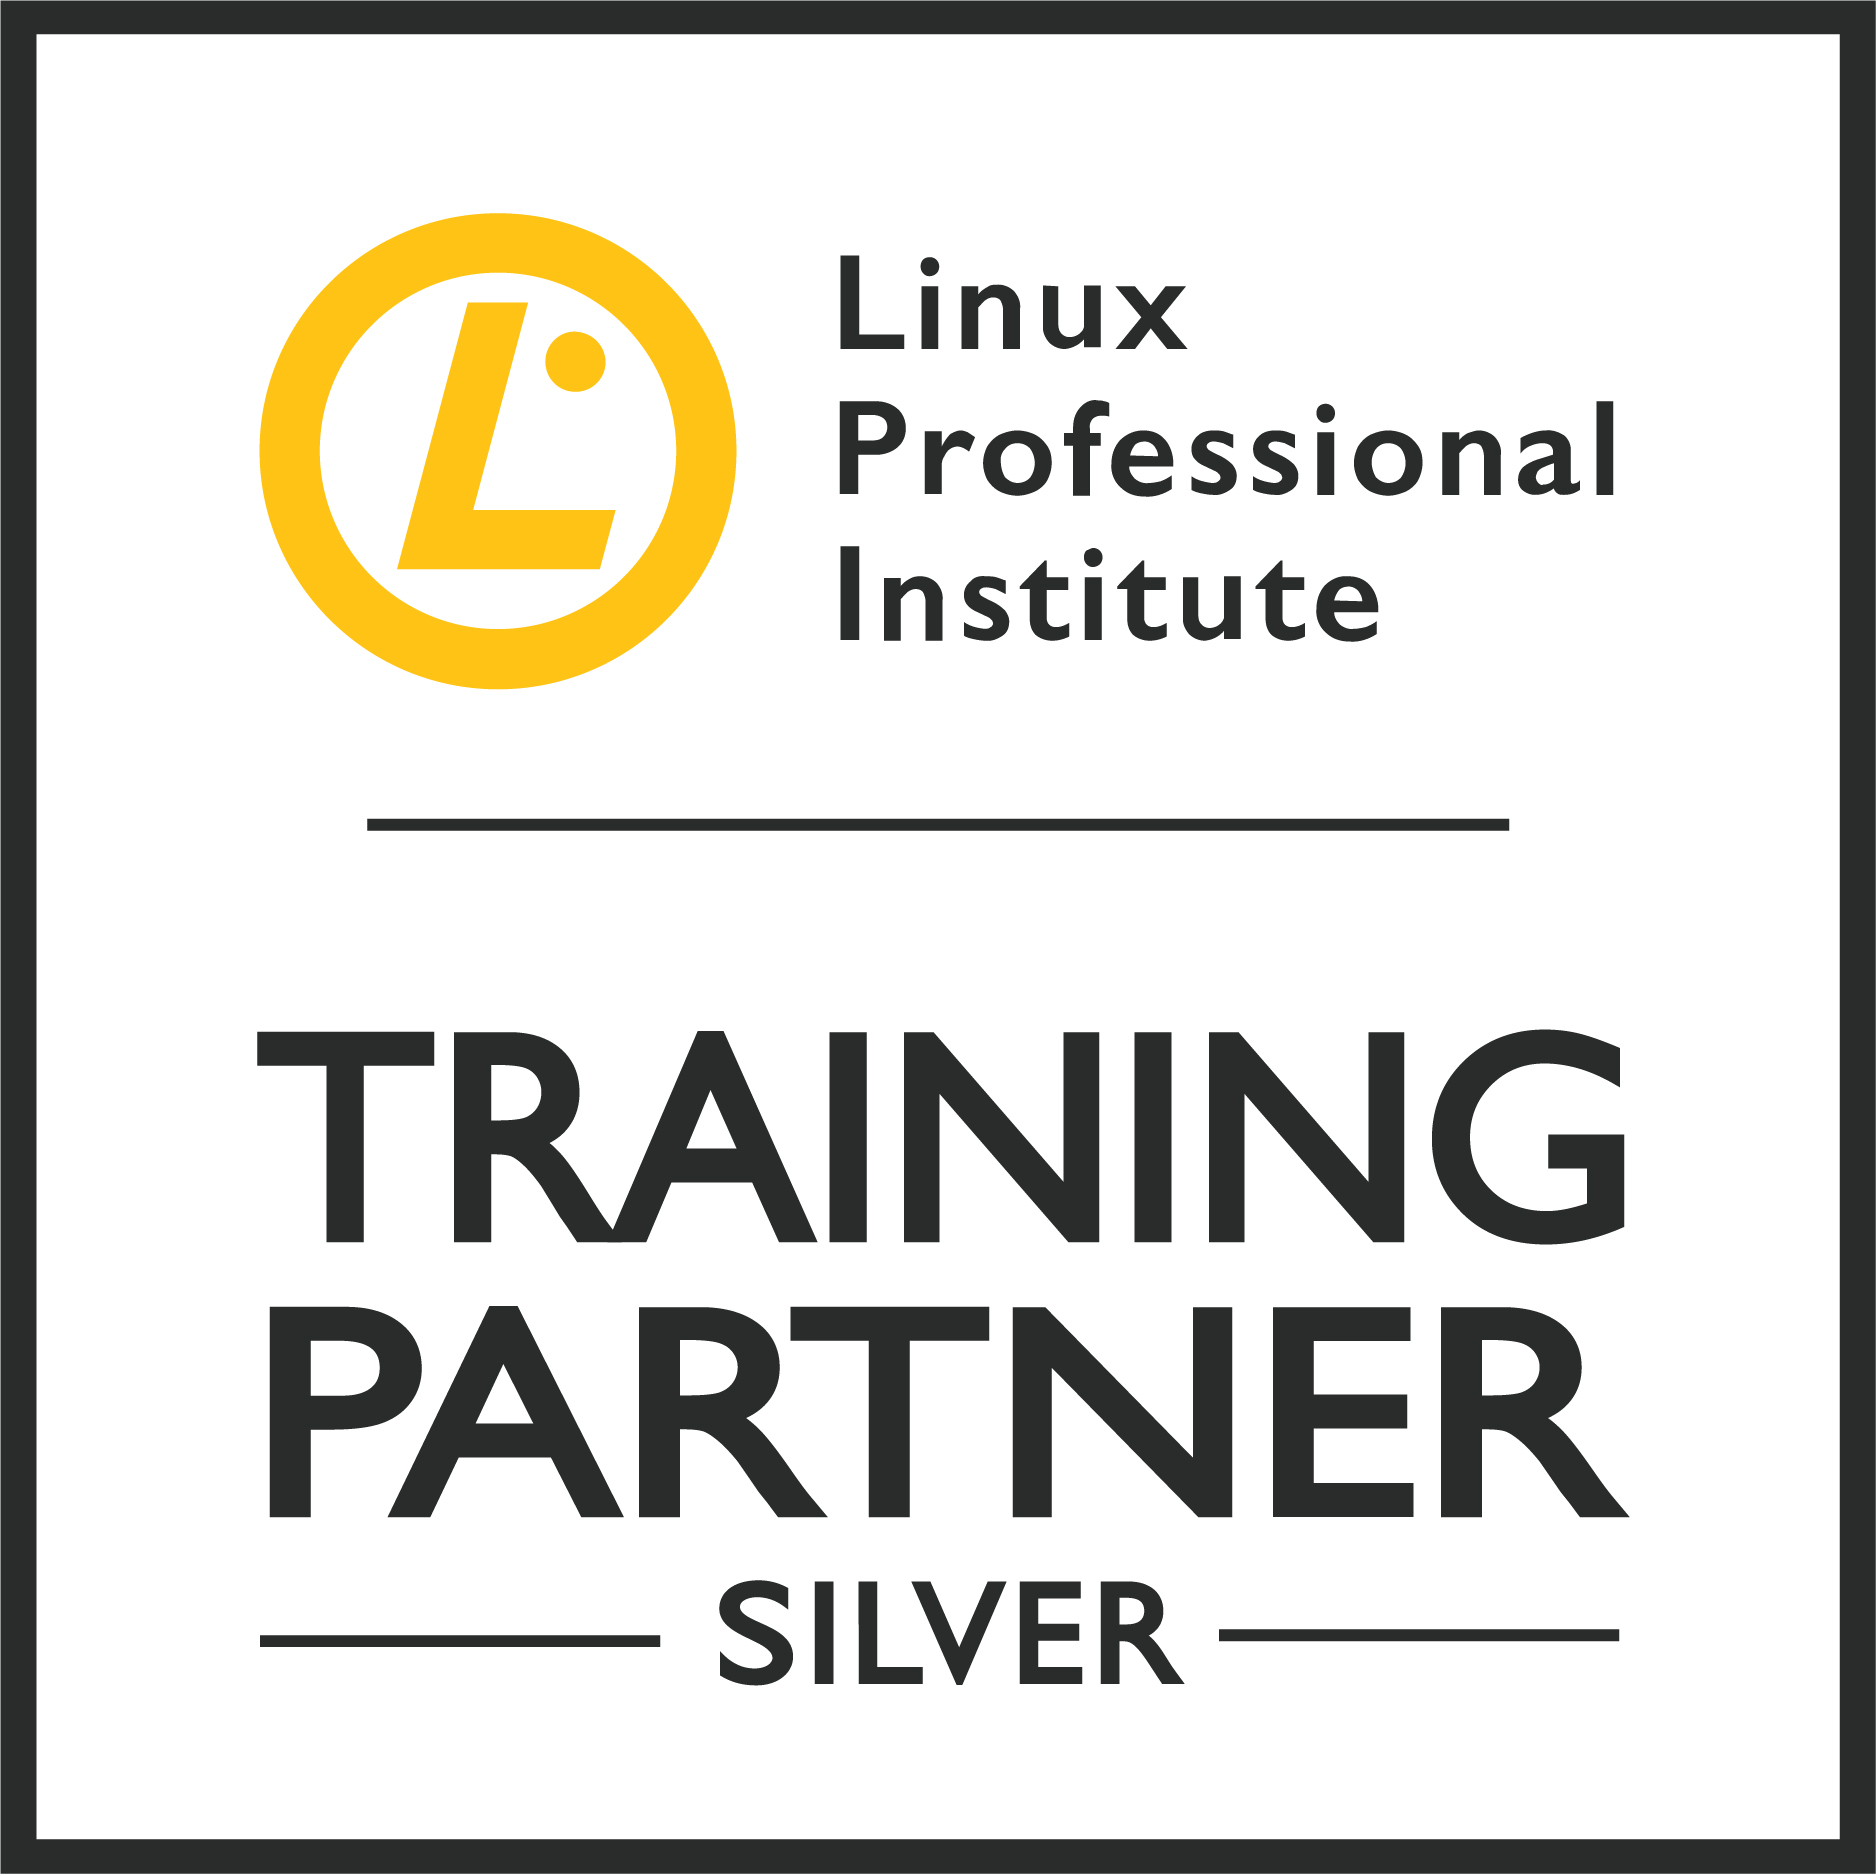 Linux - Certification Training & IT Courses with Guaranteed ResultsVendor Logo